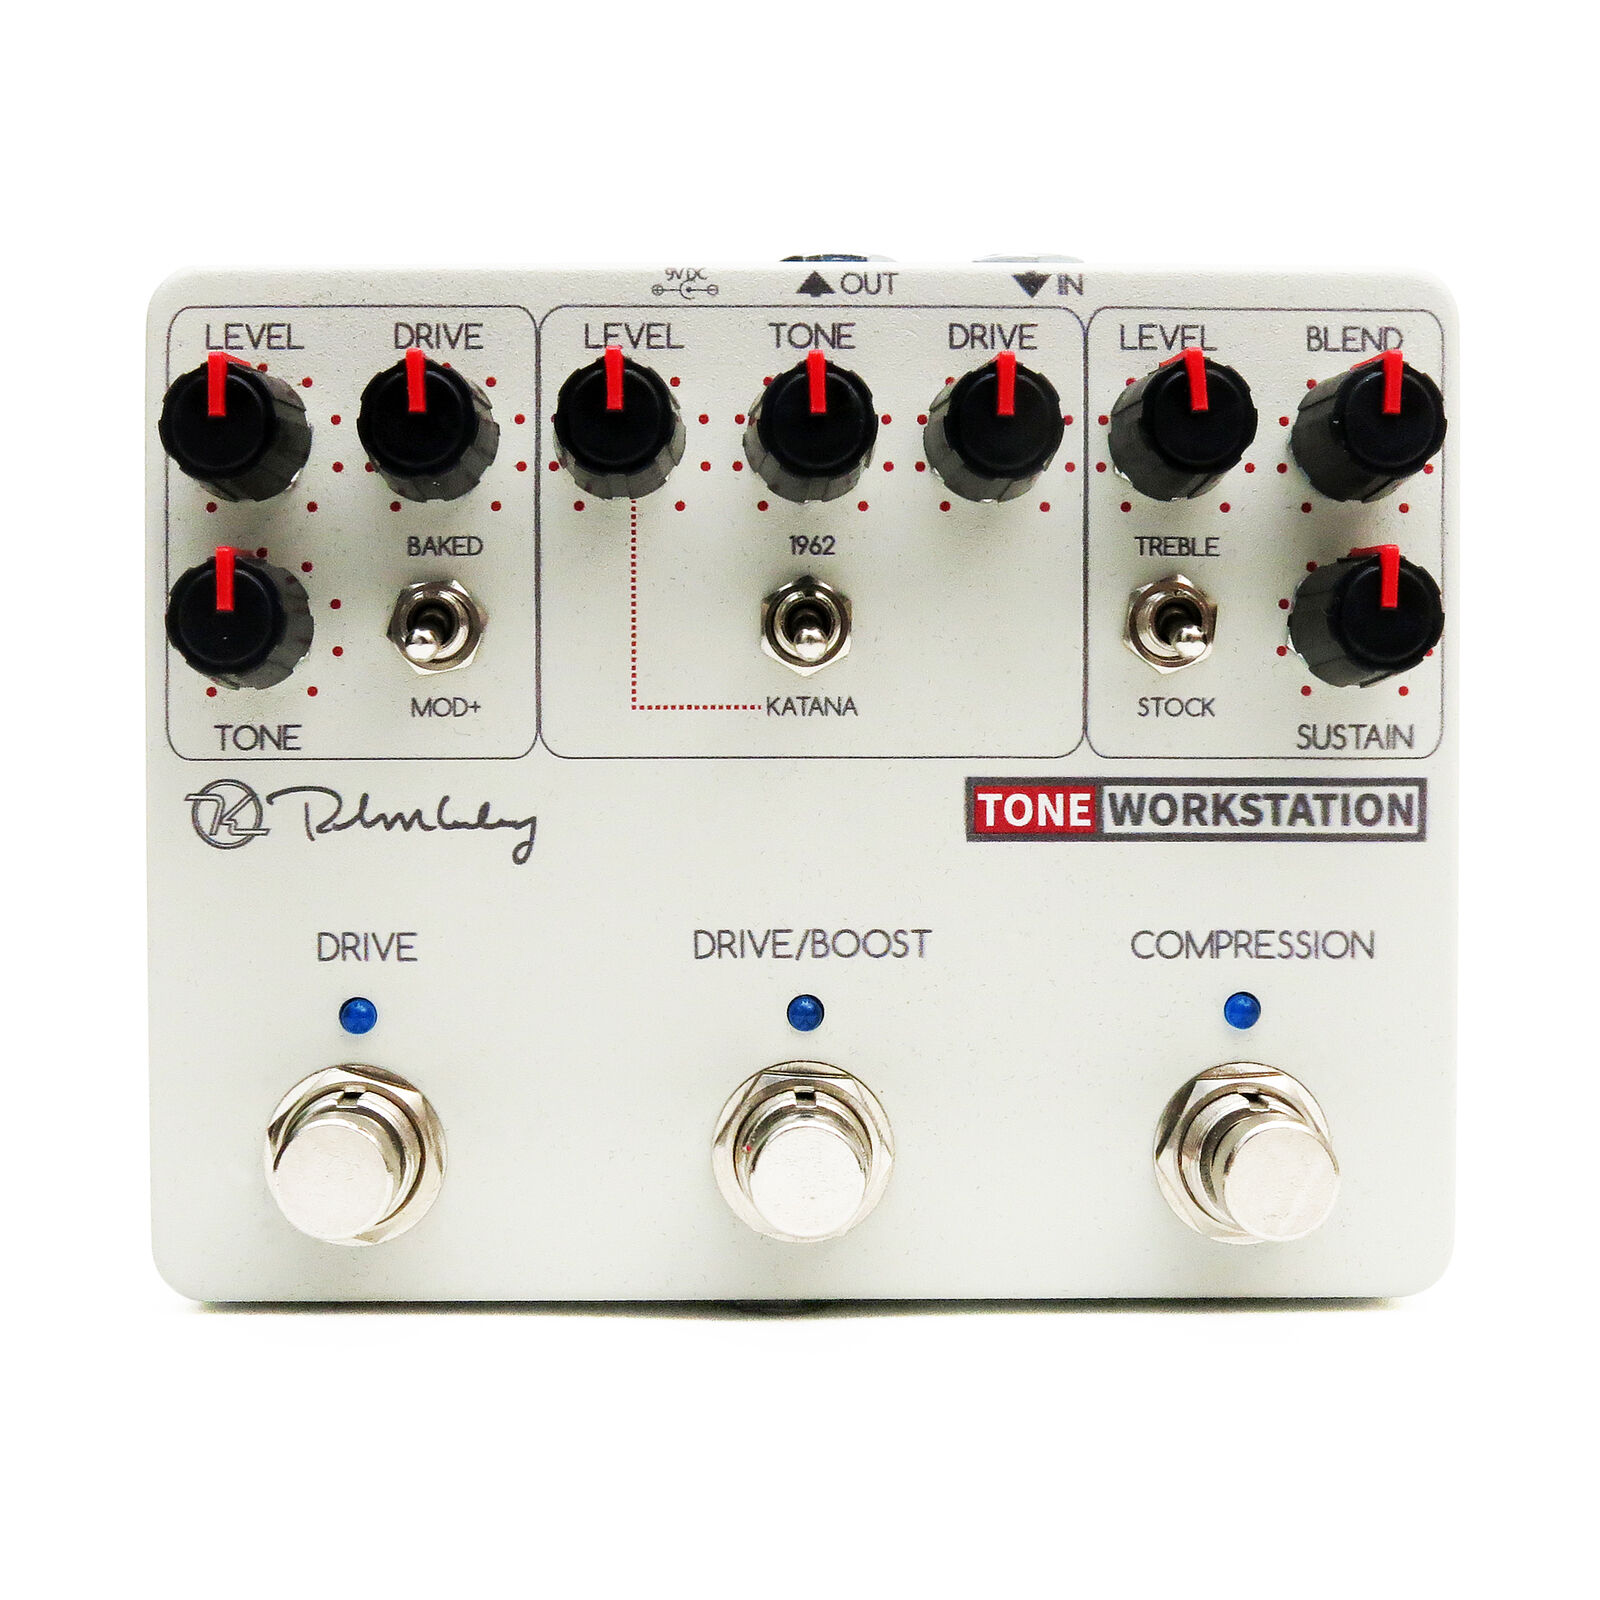 Keeley Tone Workstation Overdrive Boost Compressor New effect pedal  OPEN BOX